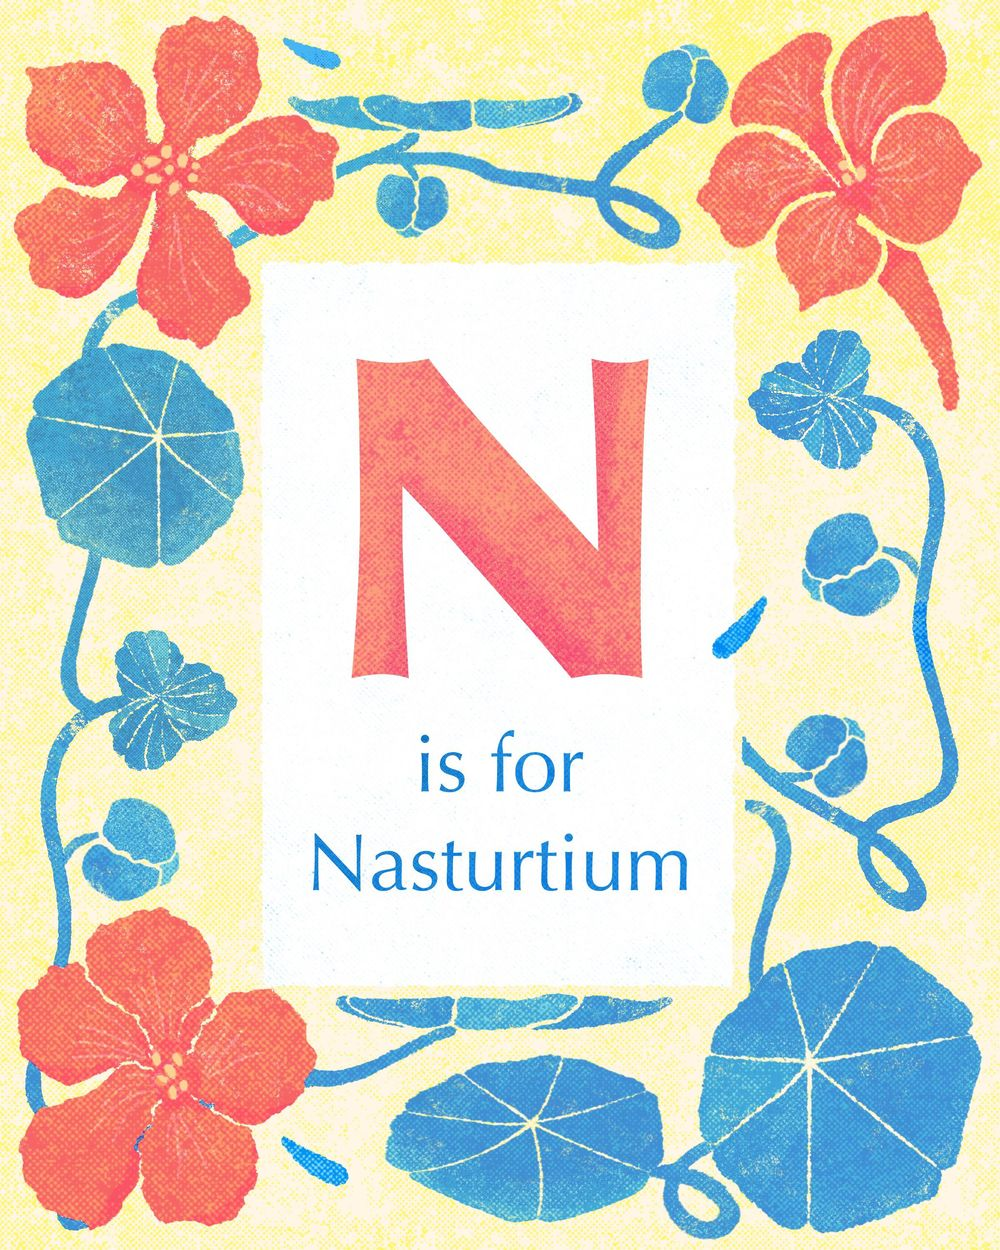 Nasturtiums (you can eat them!) - image 3 - student project